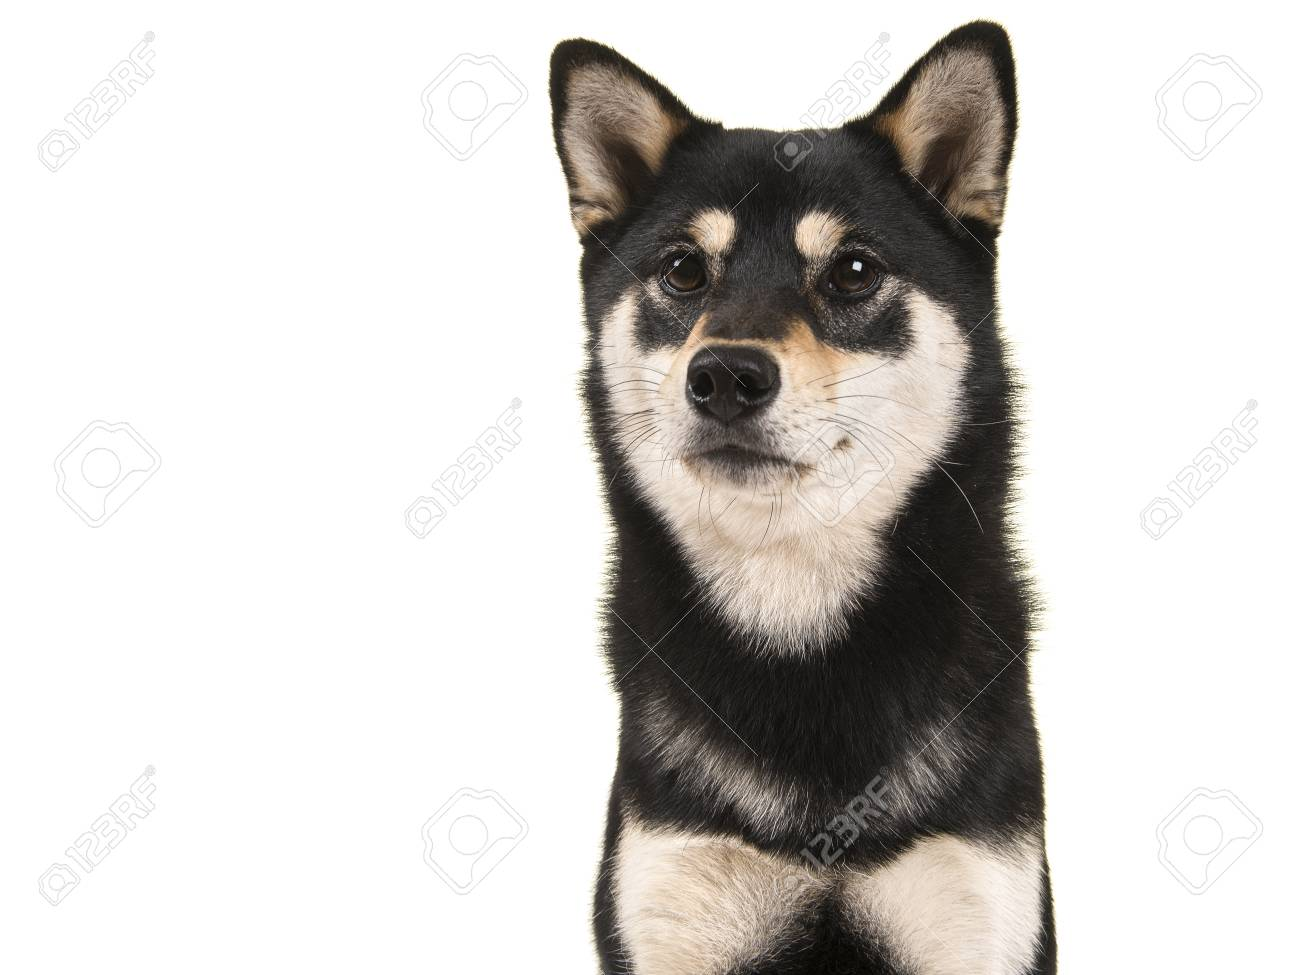 Black And Tan Shiba Inu Dog Portrait Isolated On A White Background Stock Photo Picture And Royalty Free Image Image 81501225